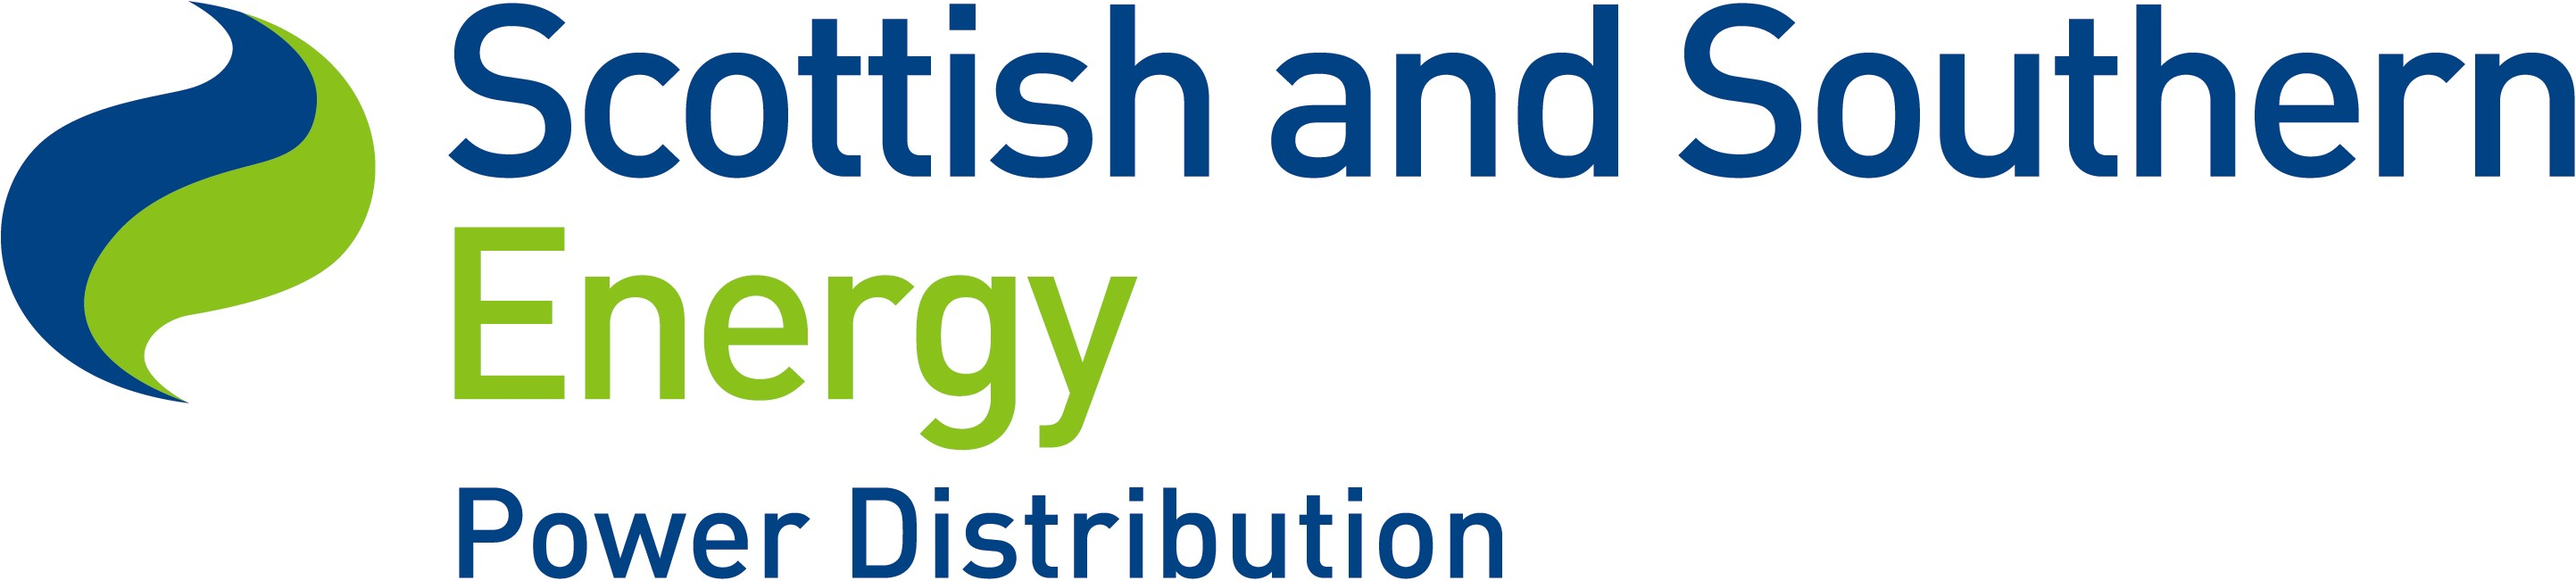 Scottish And Southern Energy Power Distribution